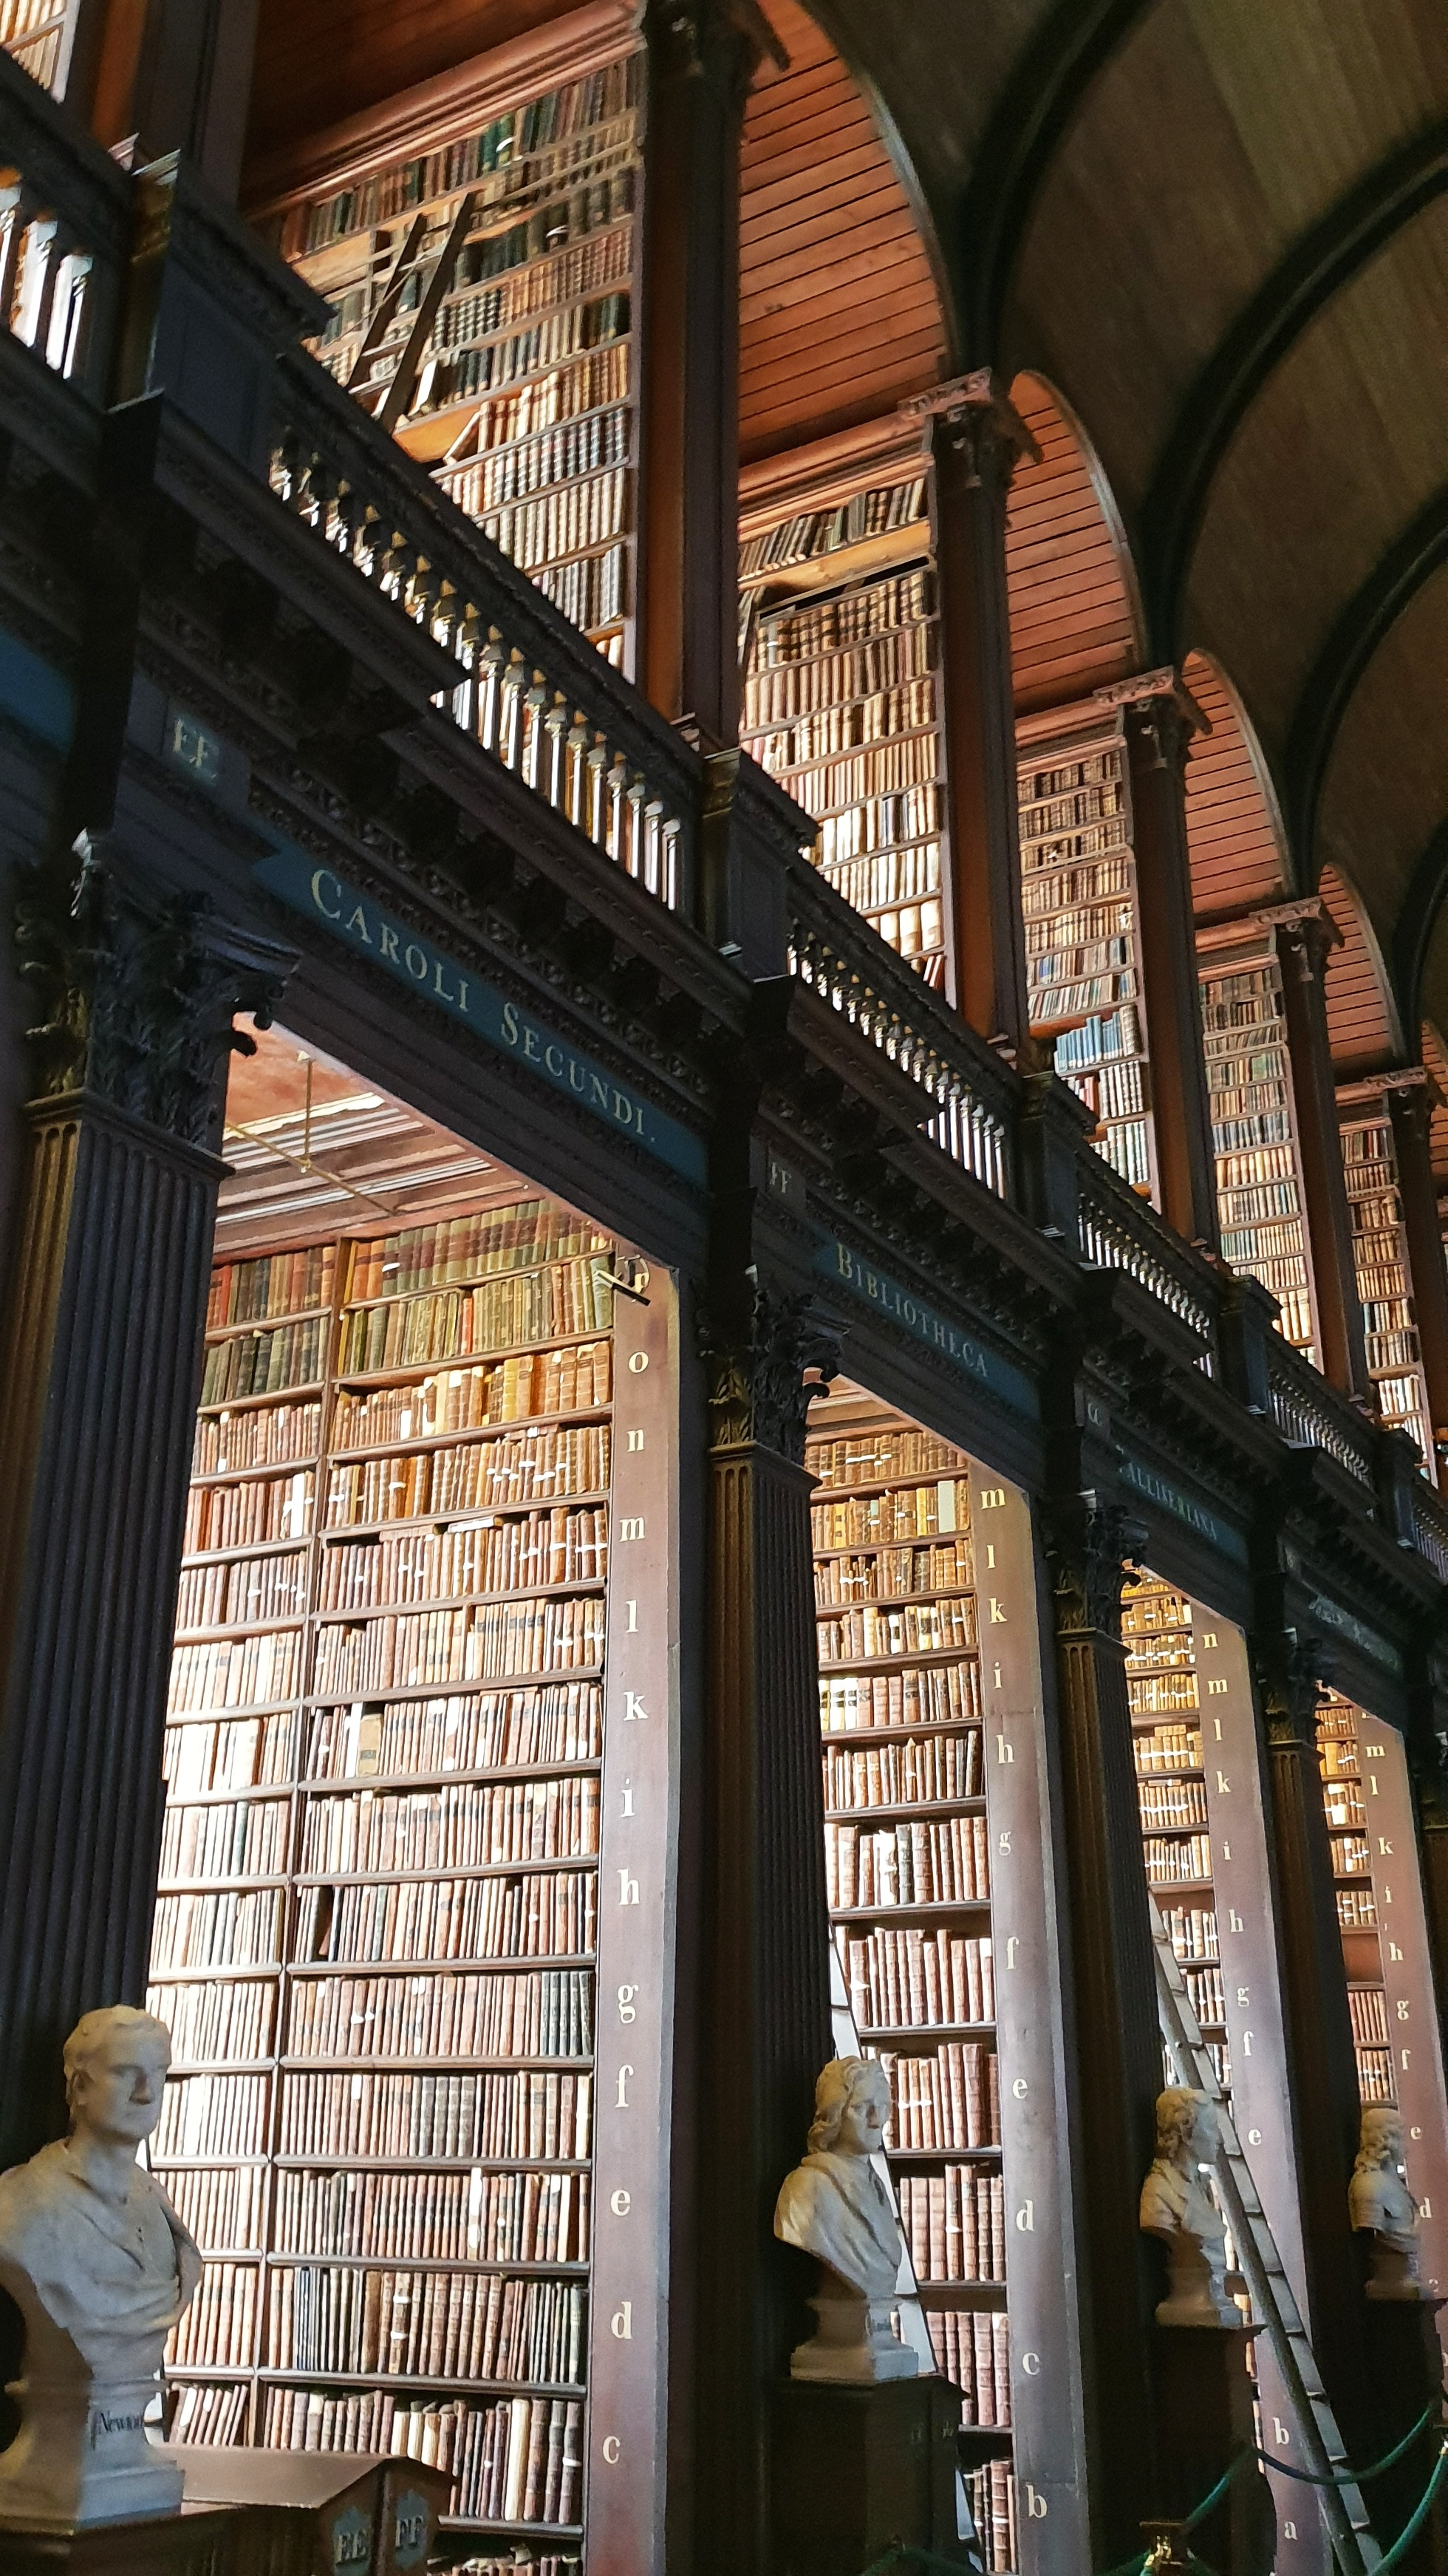 Two floors of old books at Trinity College Library